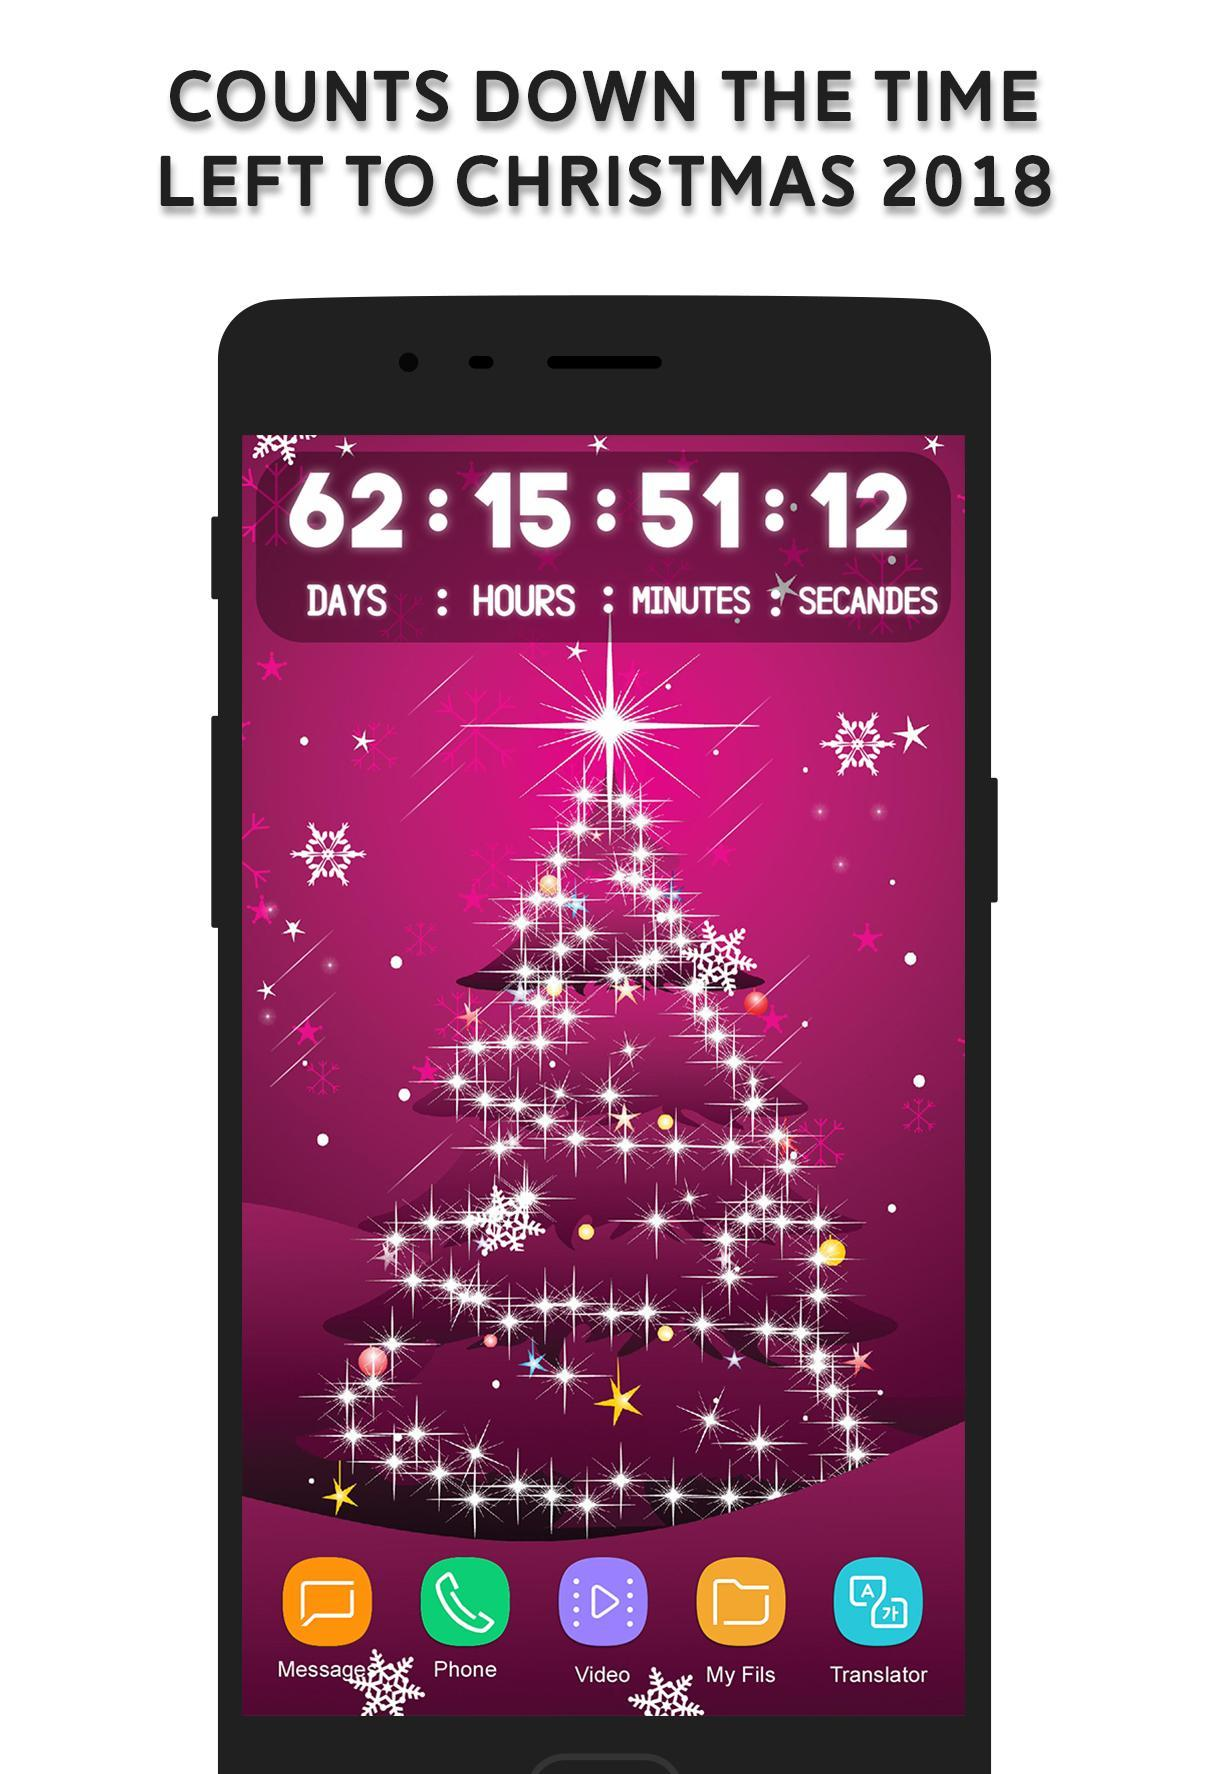 How Many Days Left For Christmas 2019.New Year Countdown 2019 For Android Apk Download